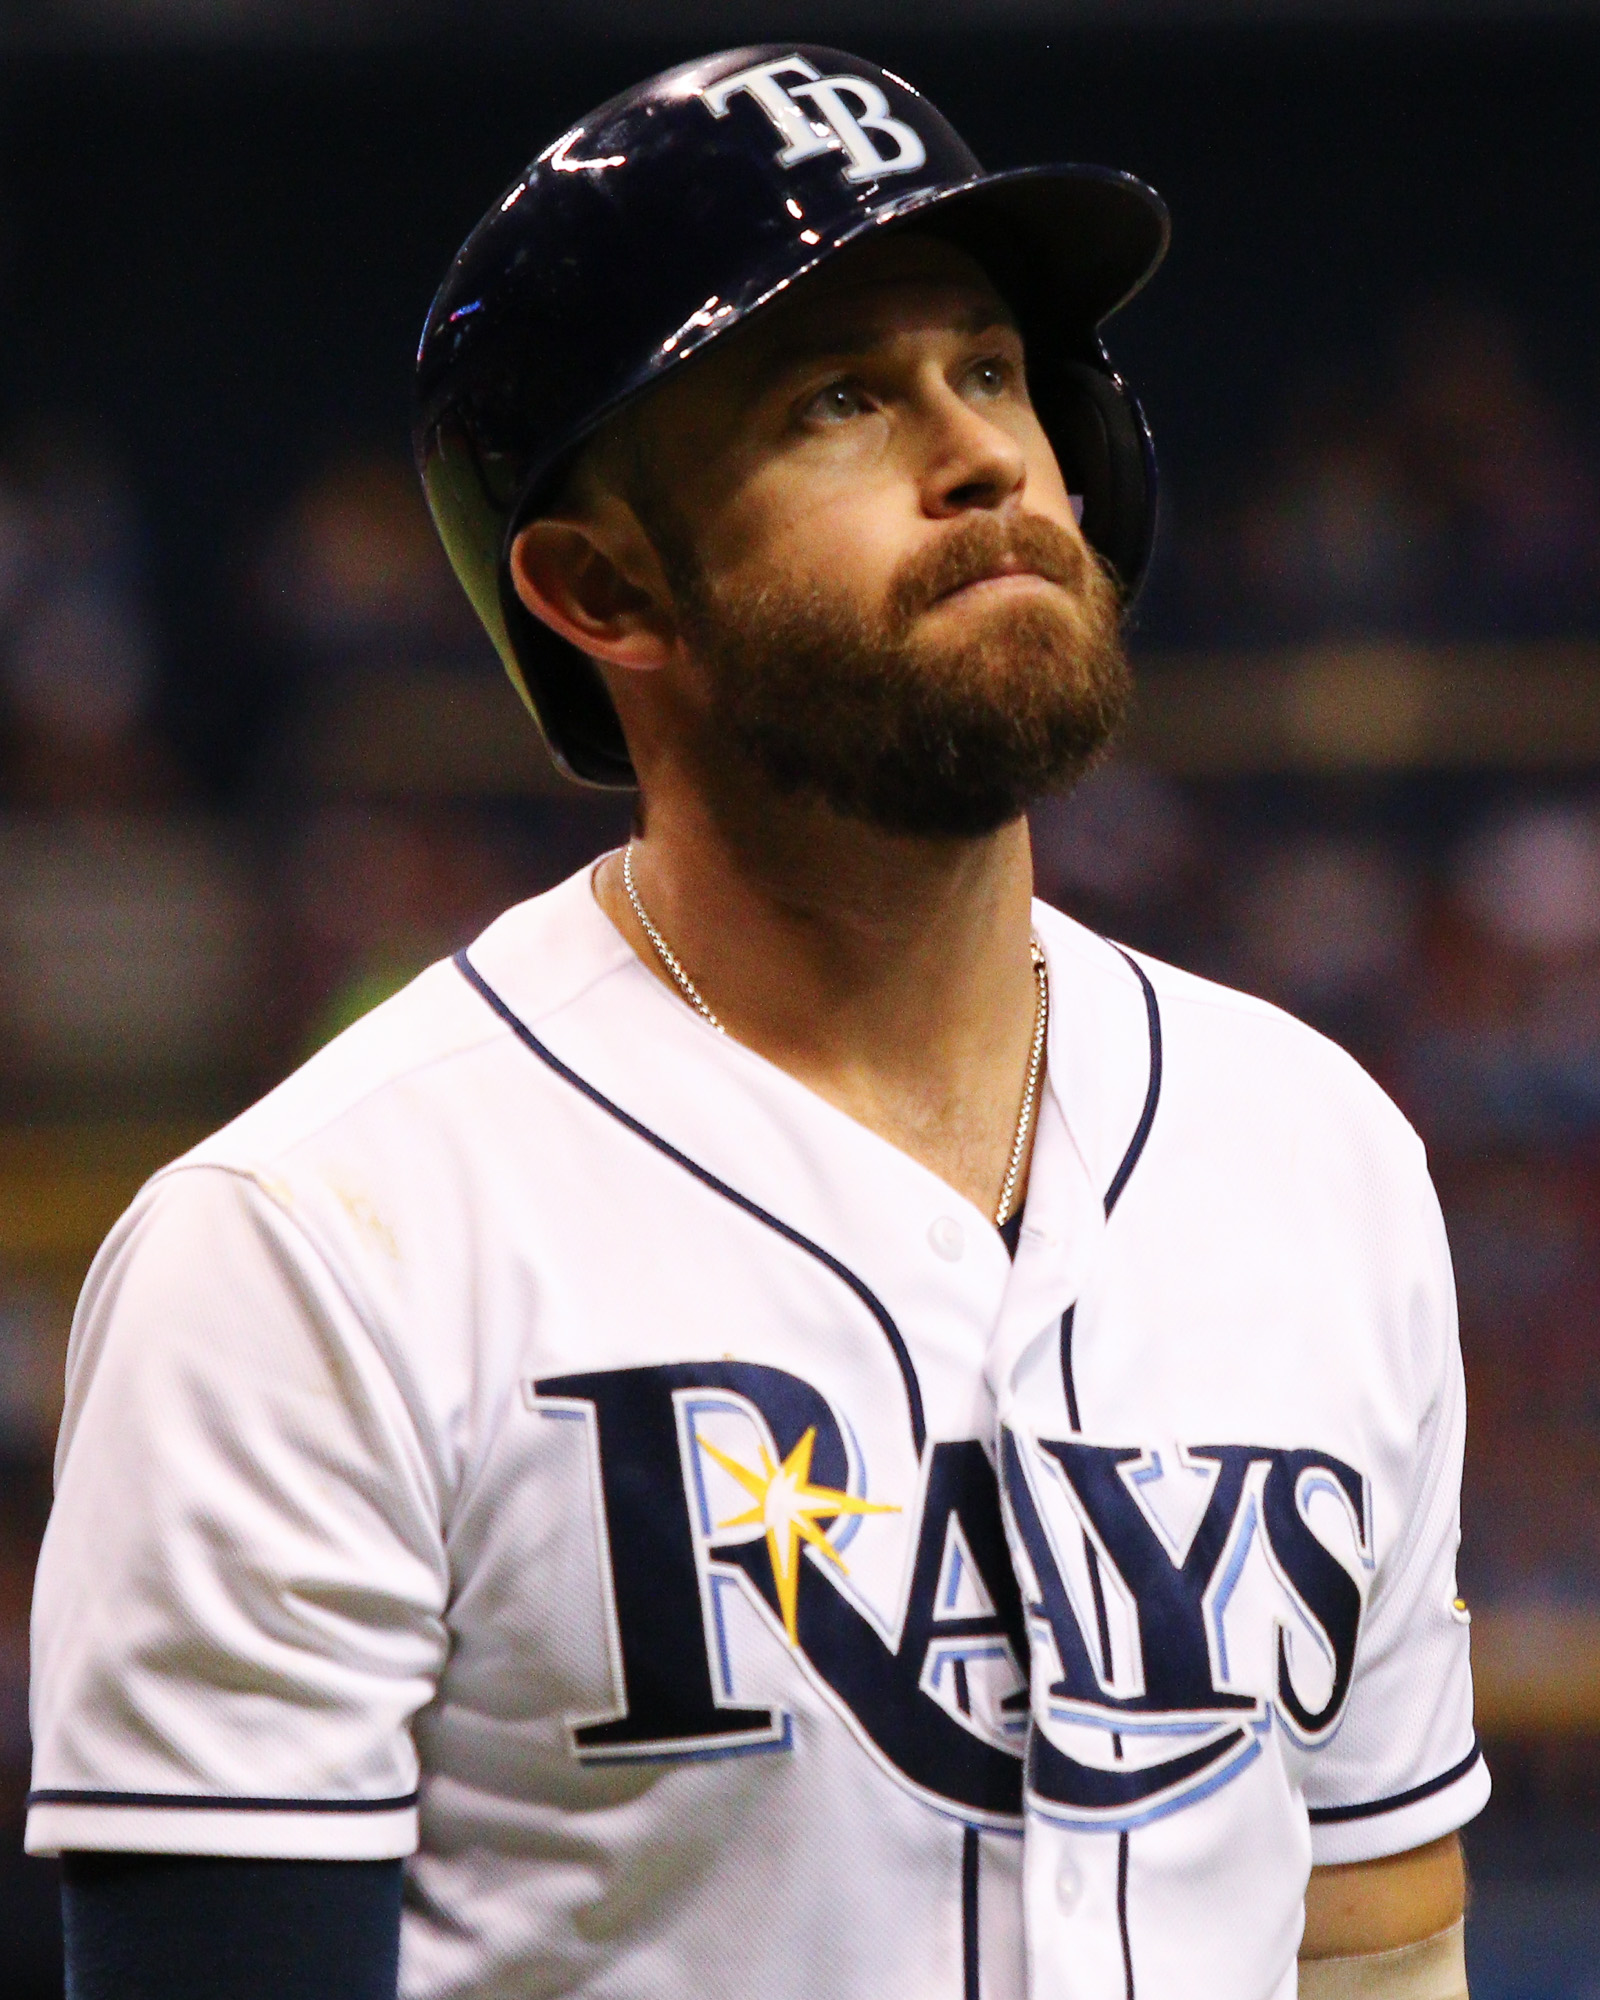 Longoria frustrated as the Rays get two hits./ANDREW J. KRAMER